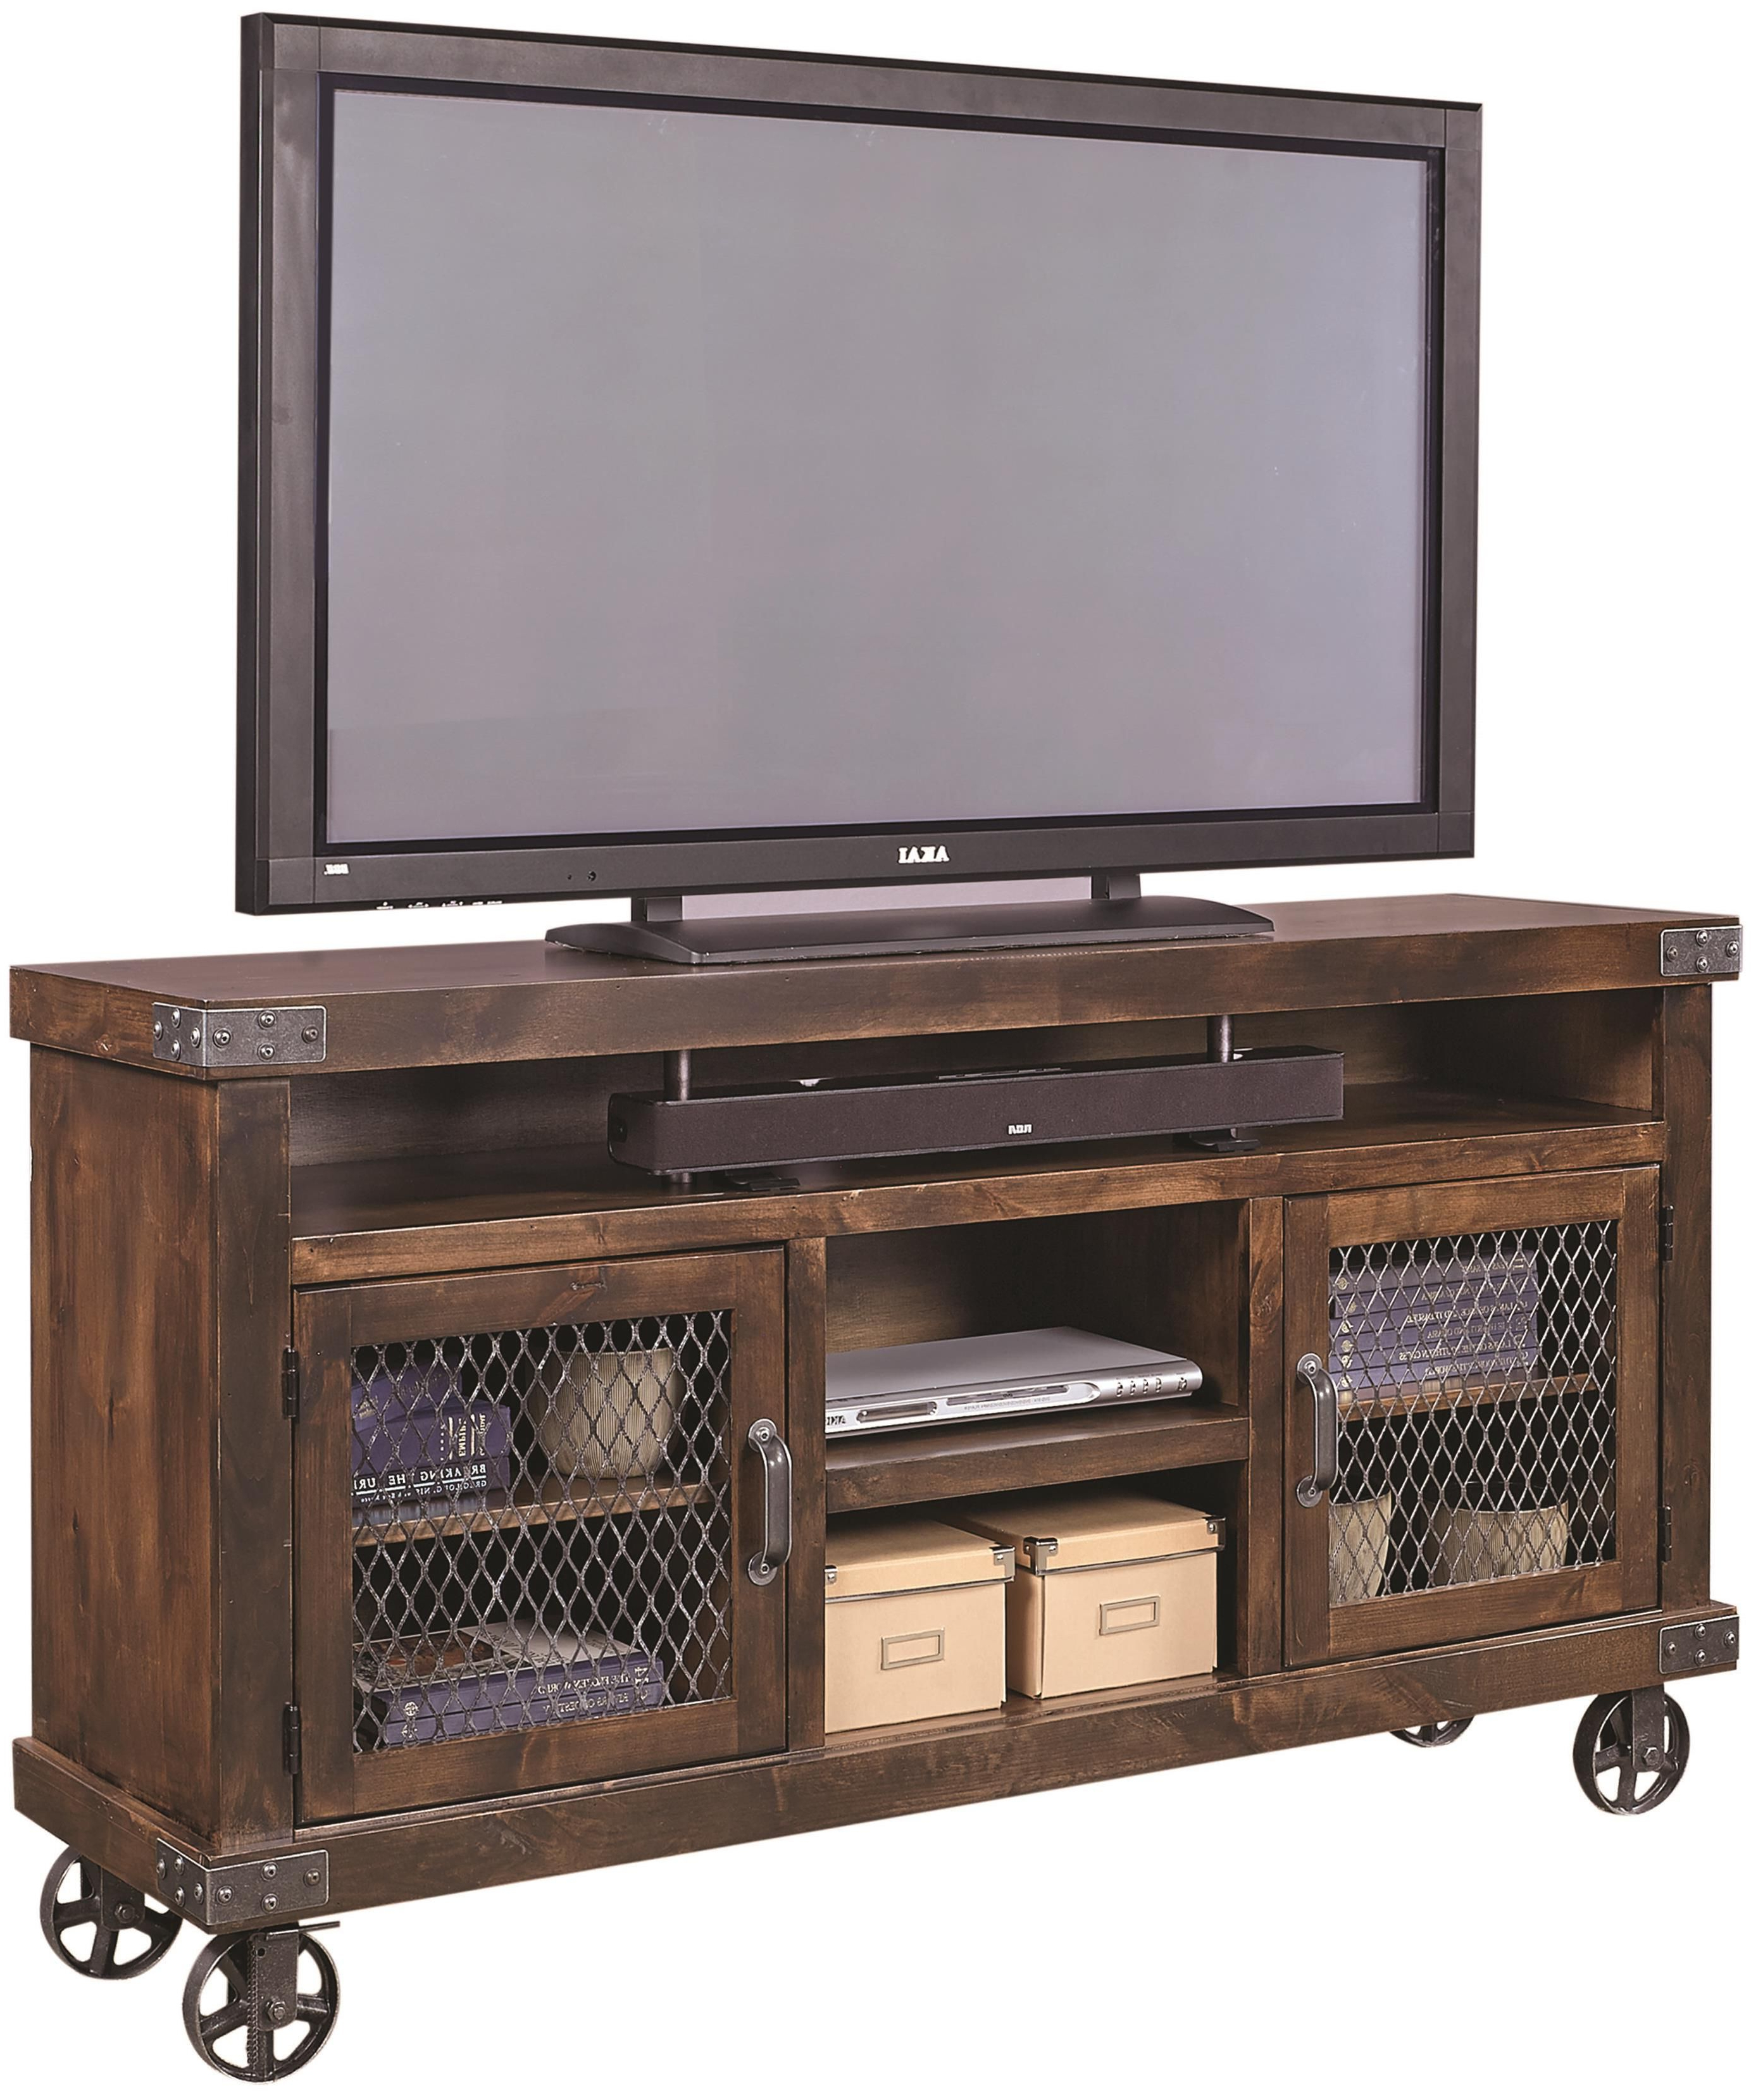 "Most Current Industrial 65"" Console With Metal Castersaspenhome In 2019 Inside Wooden Tv Stand With Wheels (View 8 of 20)"